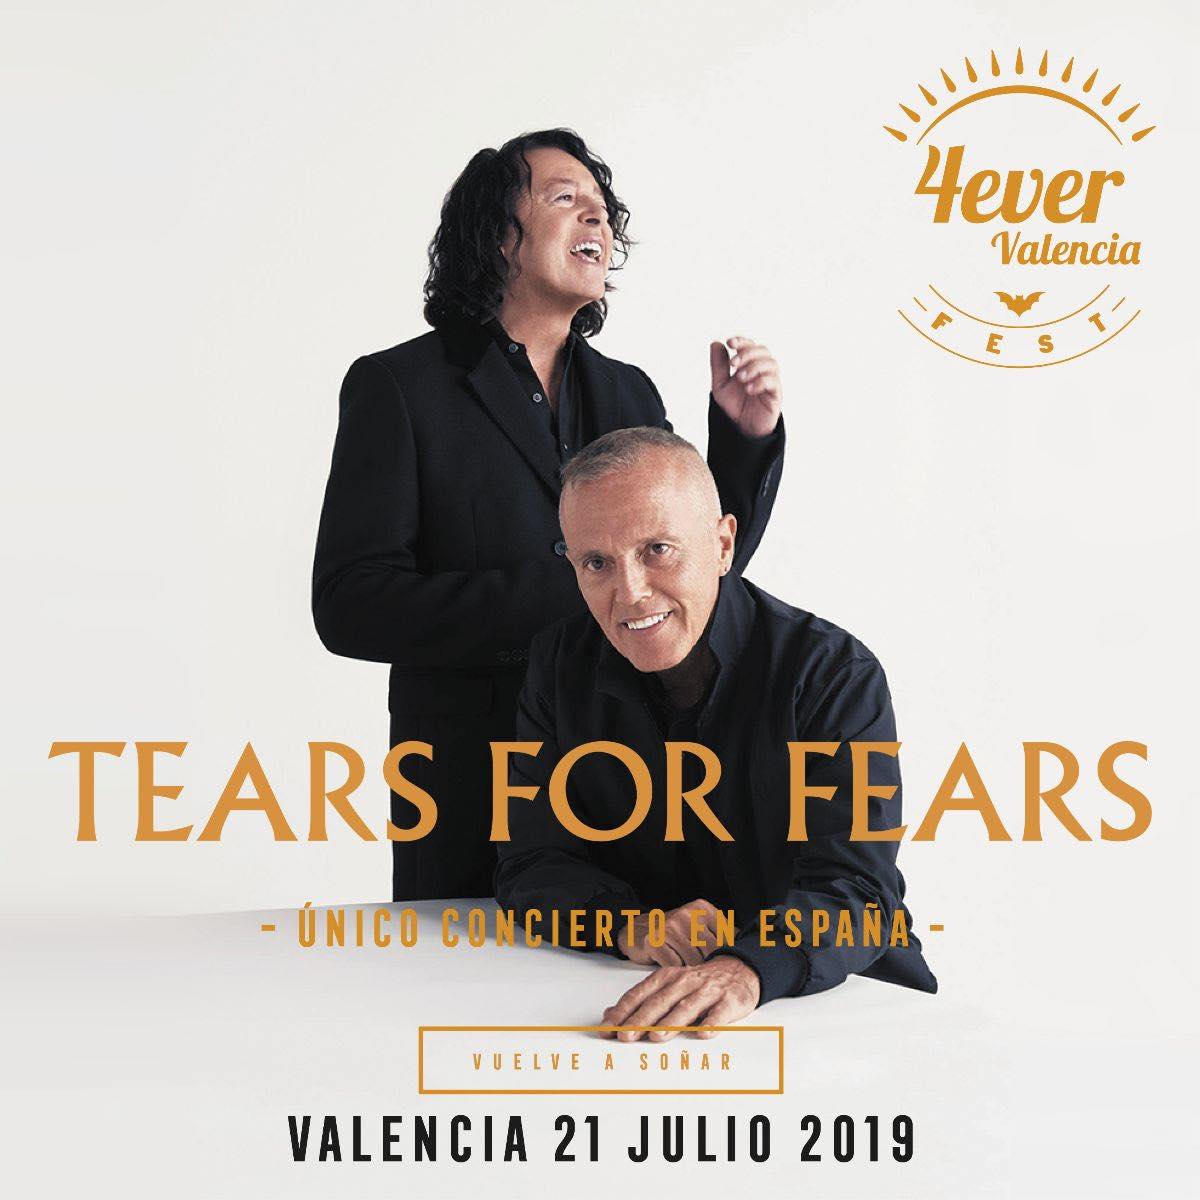 Tears for Fears en el 4ever Valencia Fest